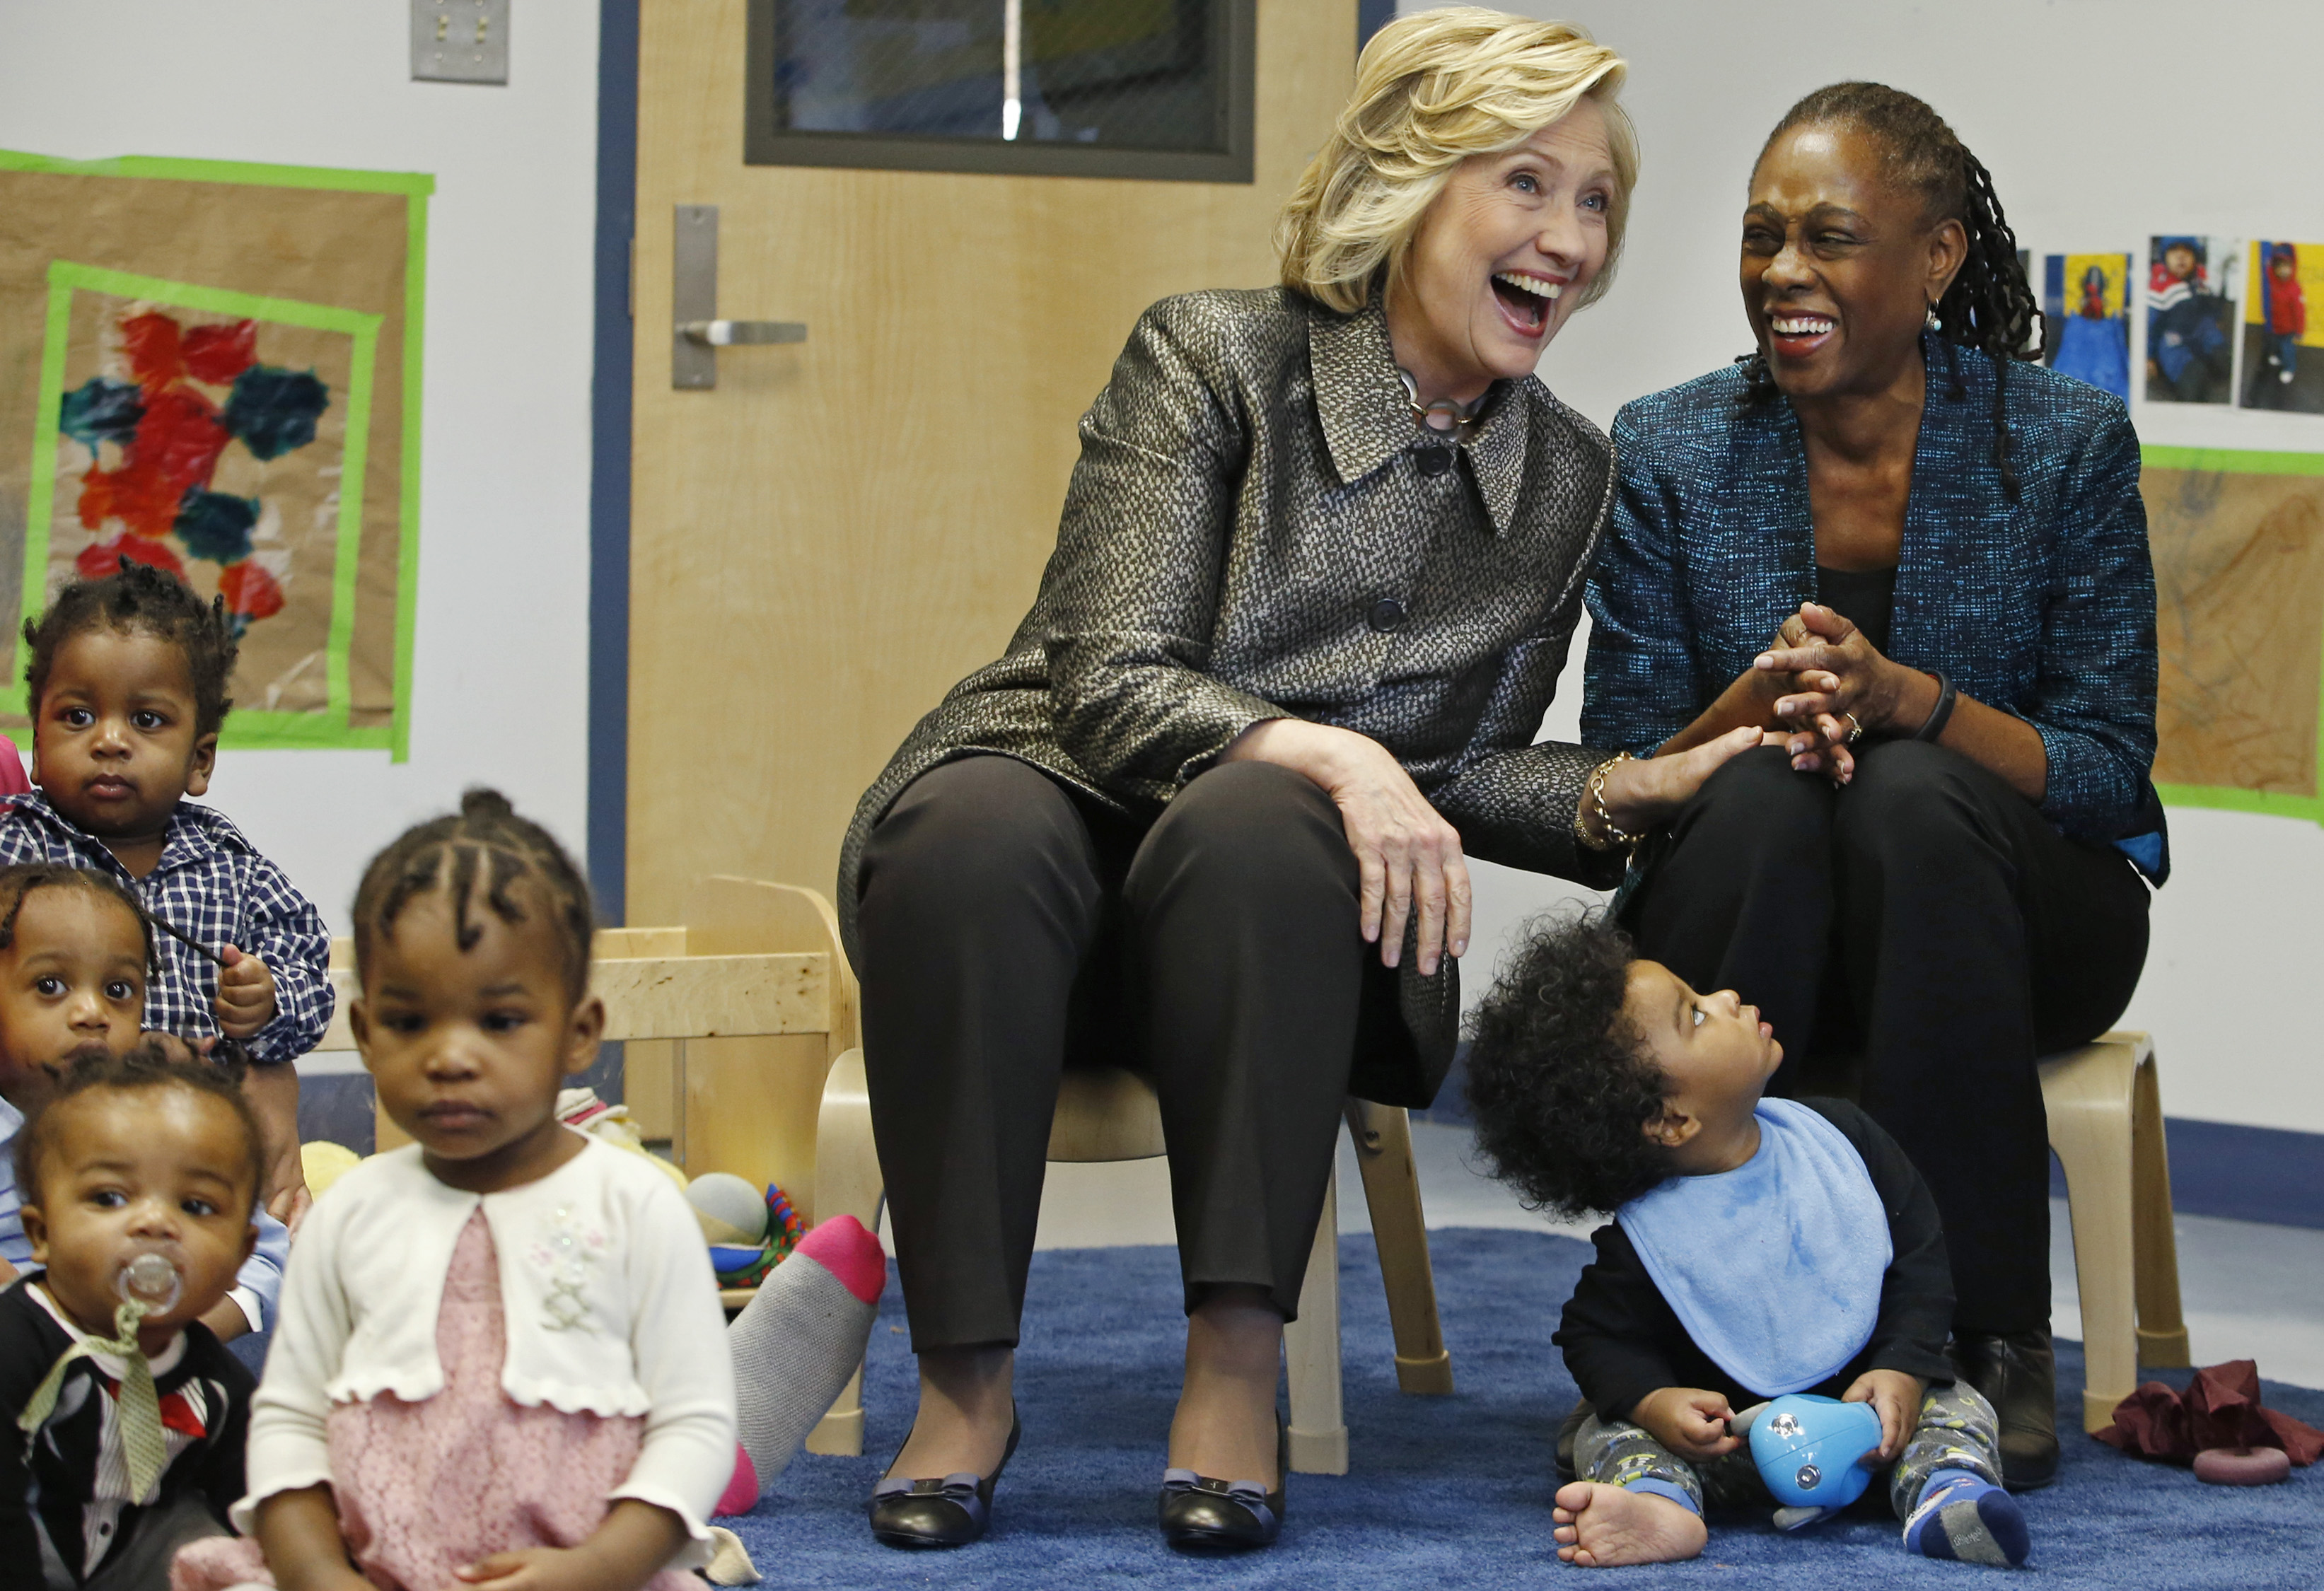 Hillary Clinton and Chirlane McCray. Photo: Getty